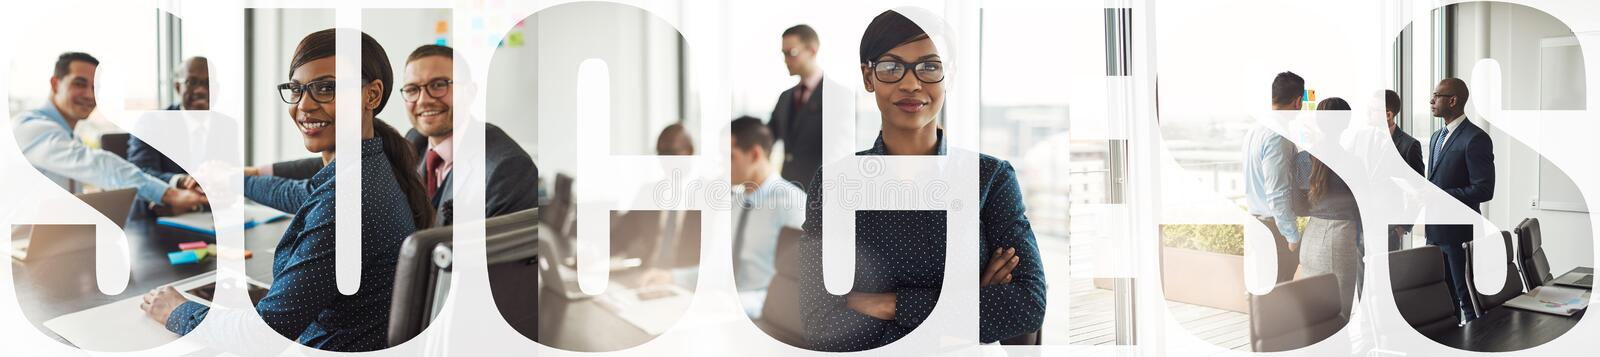 Collage of successful businesspeople working together in an office royalty free stock photo